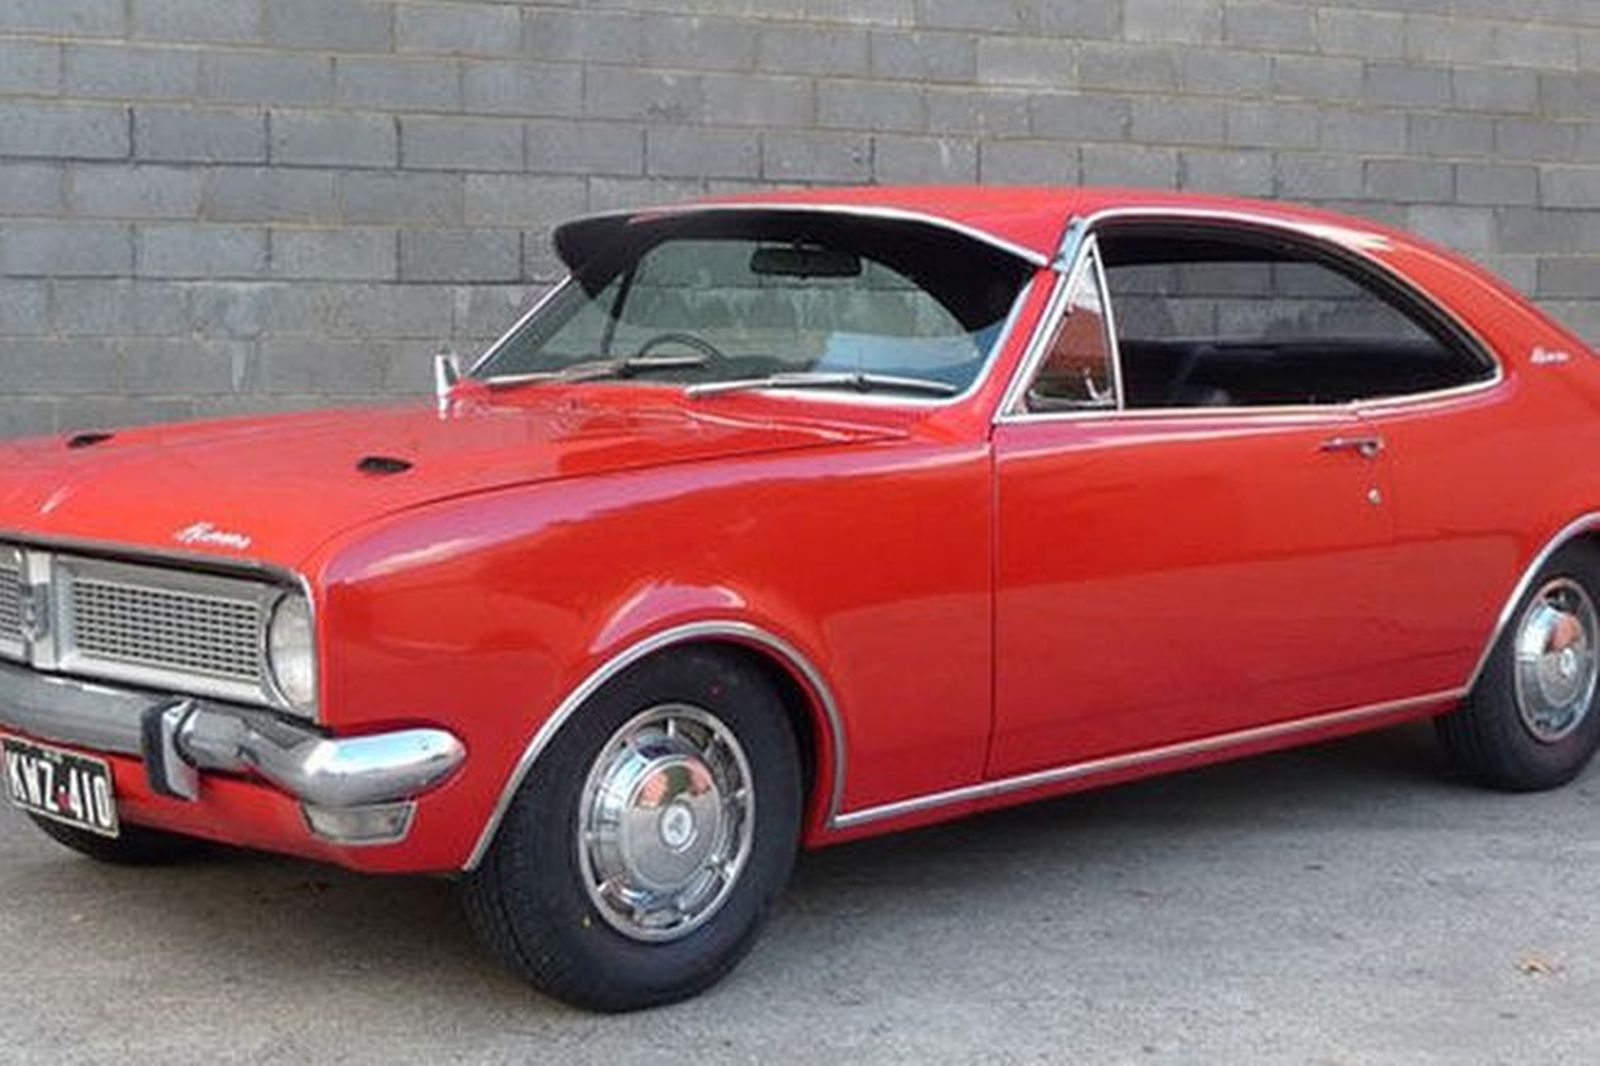 Holden HG Monaro 253 V8 Coupe Auctions - Lot 22 - Shannons